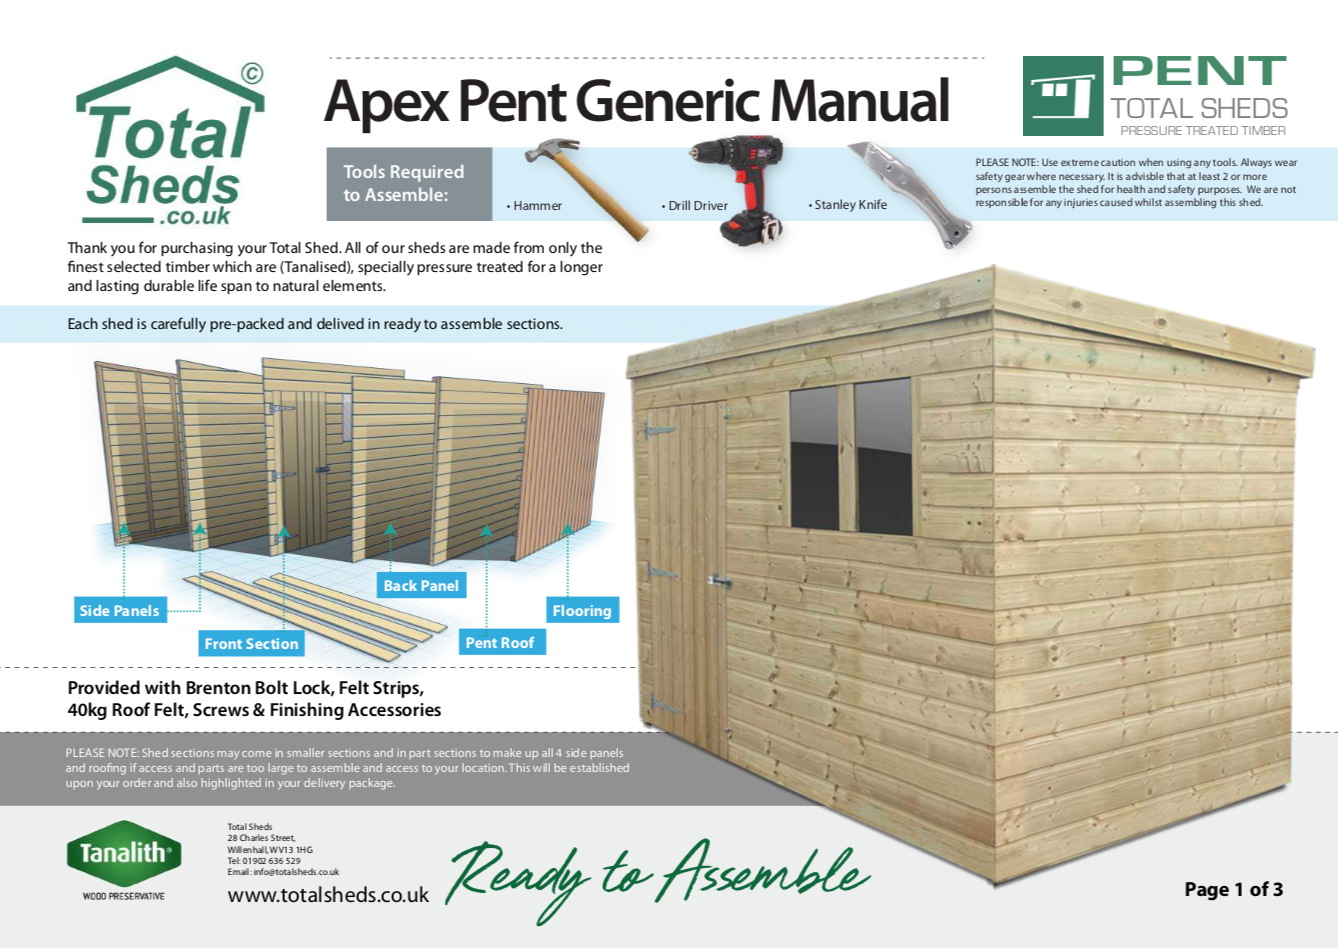 Pent Shed Installation Guide